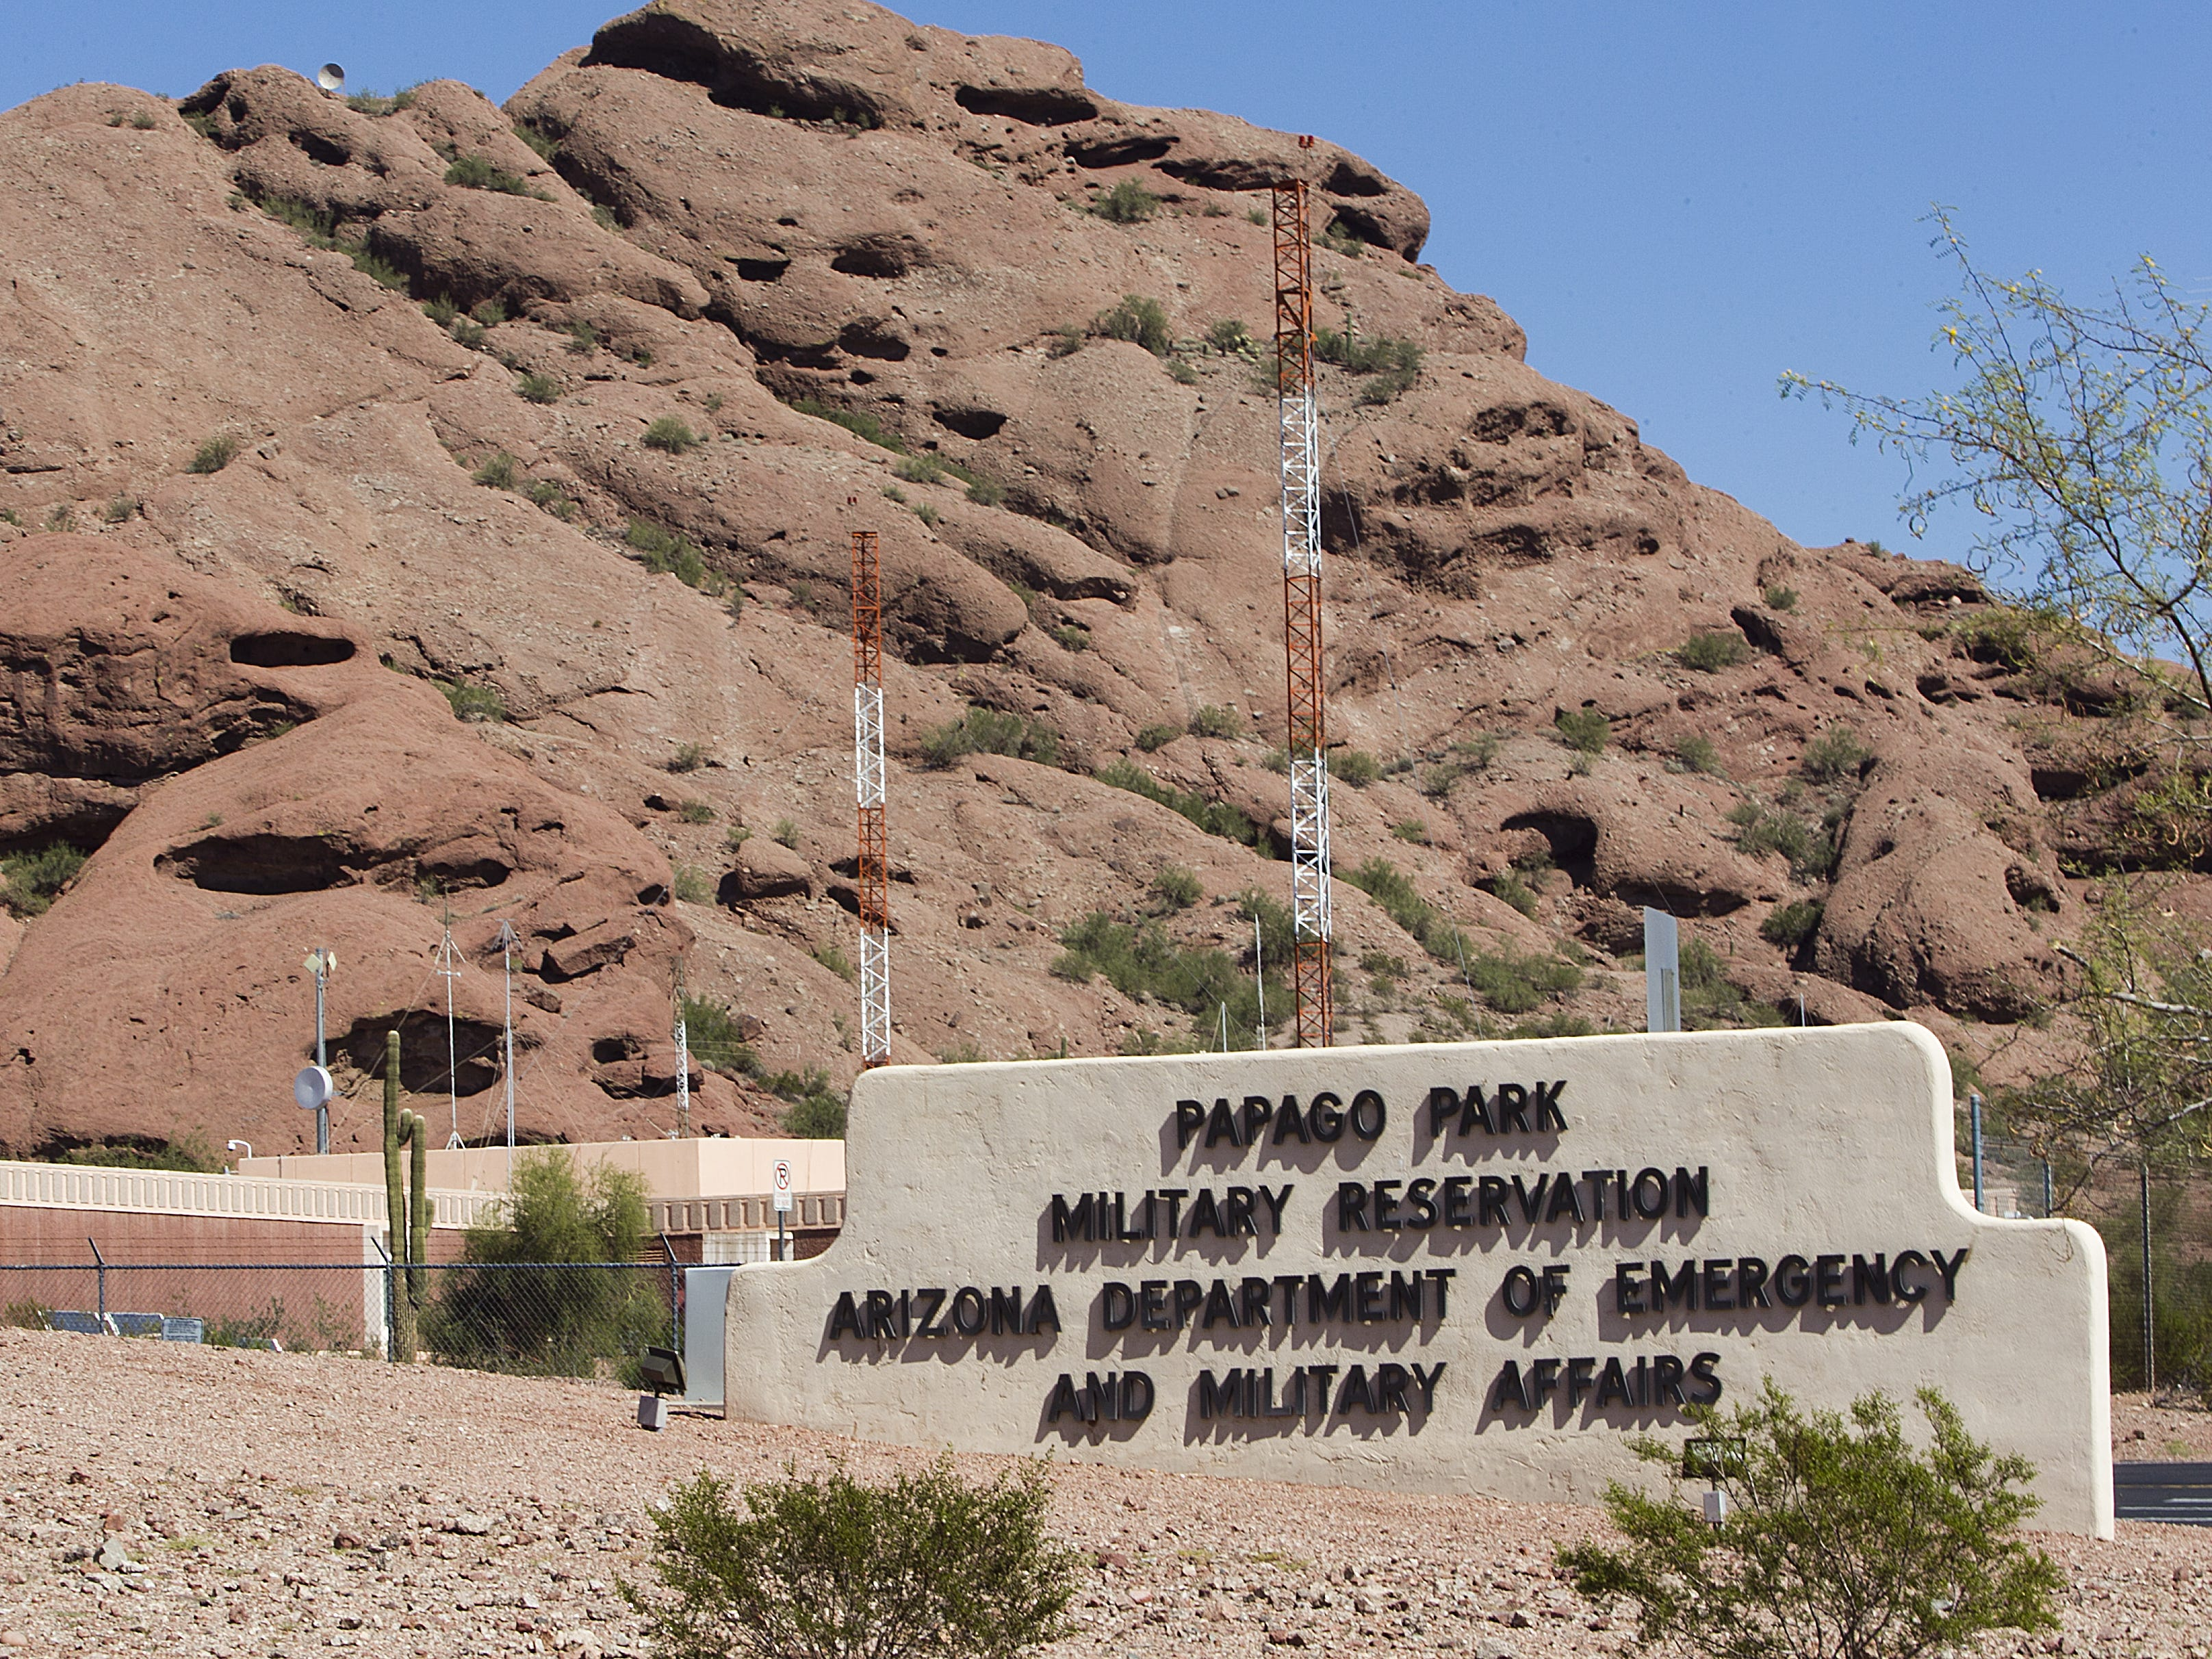 A farewell ceremony is planned Saturday at Papago Park Military Reservation in Phoenix for an Arizona National Guard unit that is shipping out.